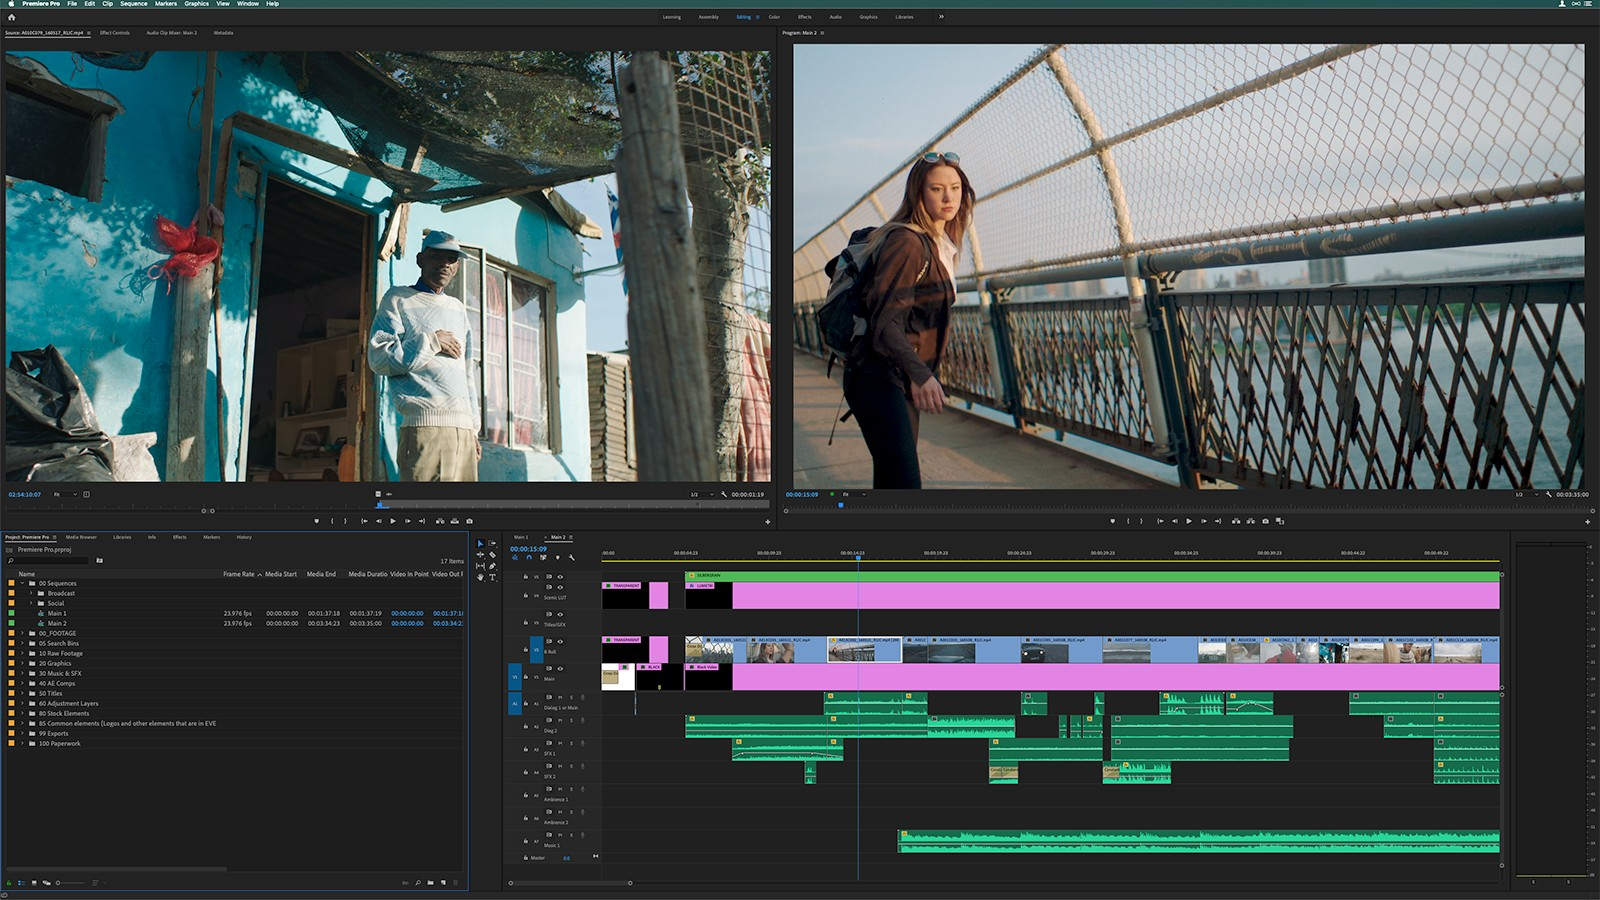 Download Premiere Pro How To Get Premiere Pro For Free Or With Creative Cloud Creative Bloq